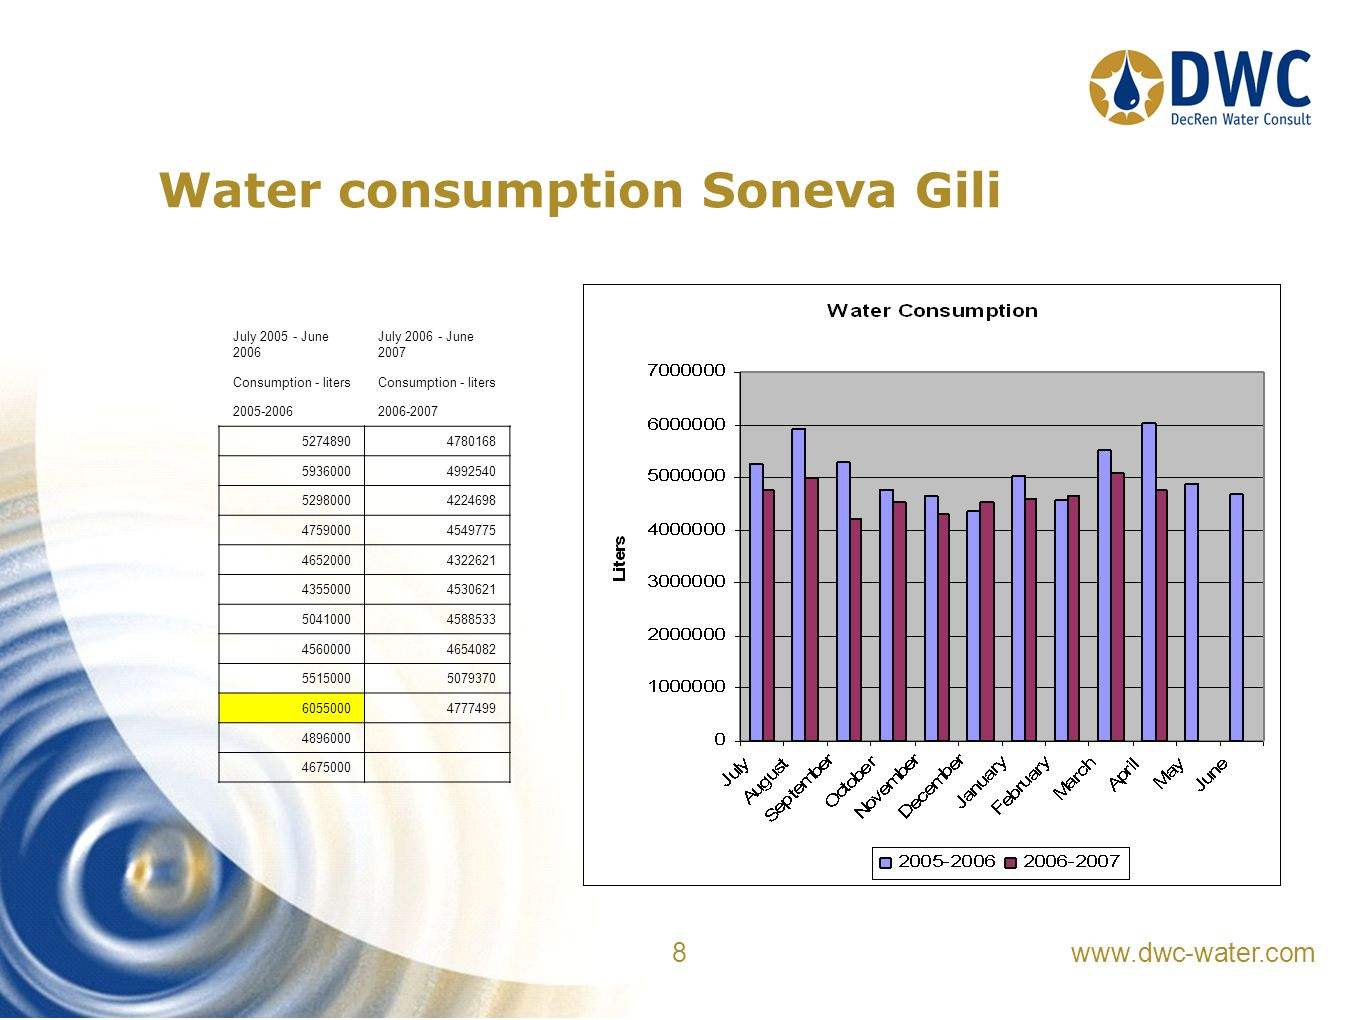 www.dwc-water.com 8 Water consumption Soneva Gili July 2005 - June 2006 July 2006 - June 2007 Consumption - liters 2005-20062006-2007 52748904780168 59360004992540 52980004224698 47590004549775 46520004322621 43550004530621 50410004588533 45600004654082 55150005079370 60550004777499 4896000 4675000